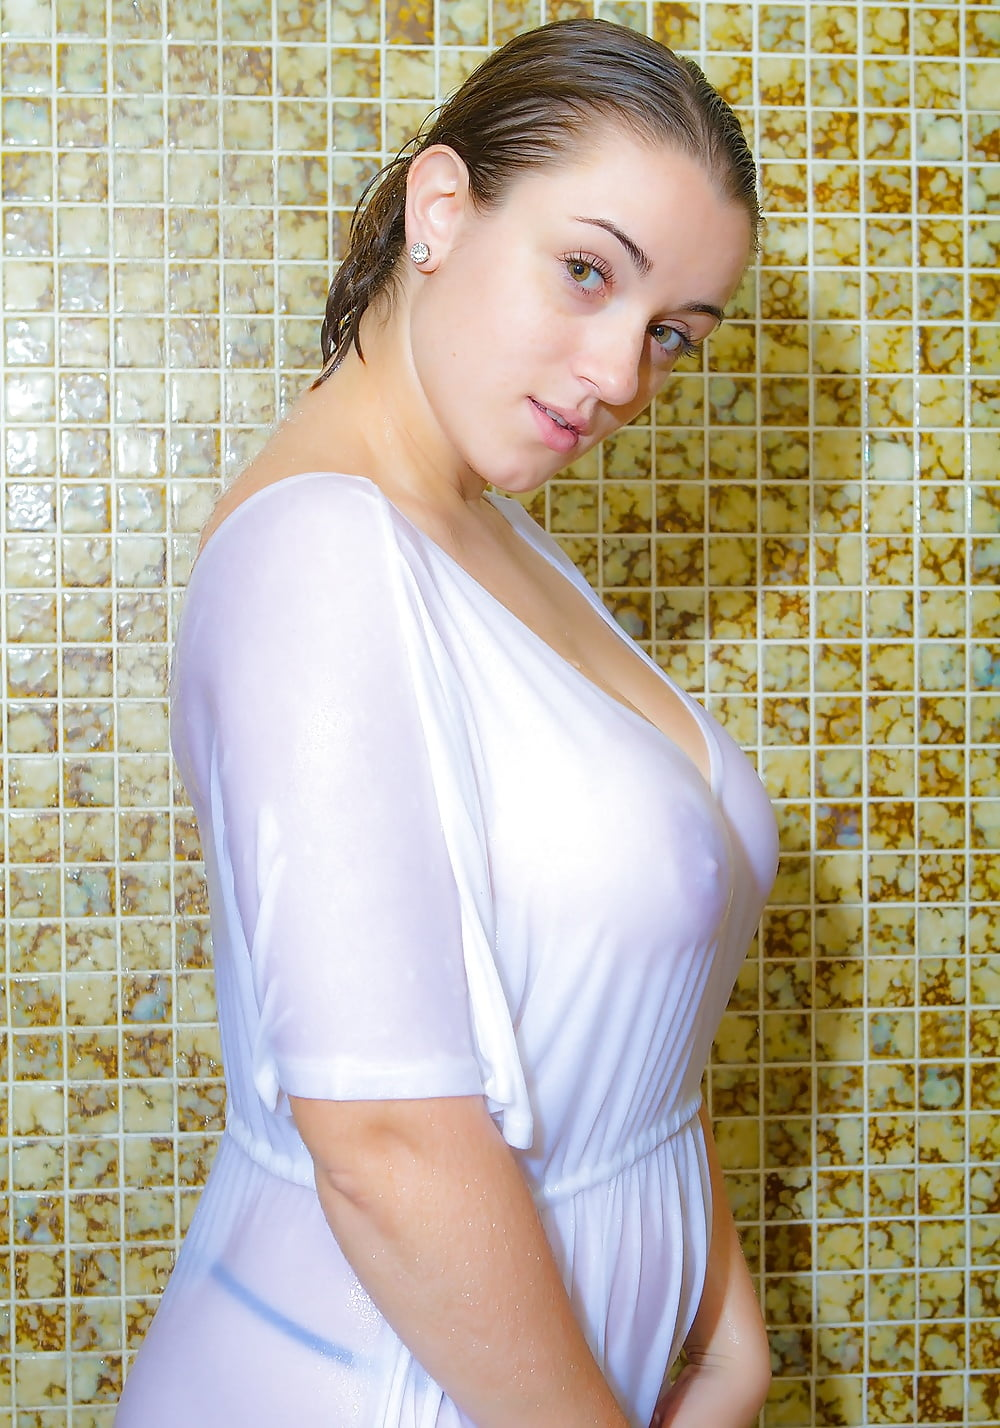 See and Save As tiffany s big boobs in the shower porn